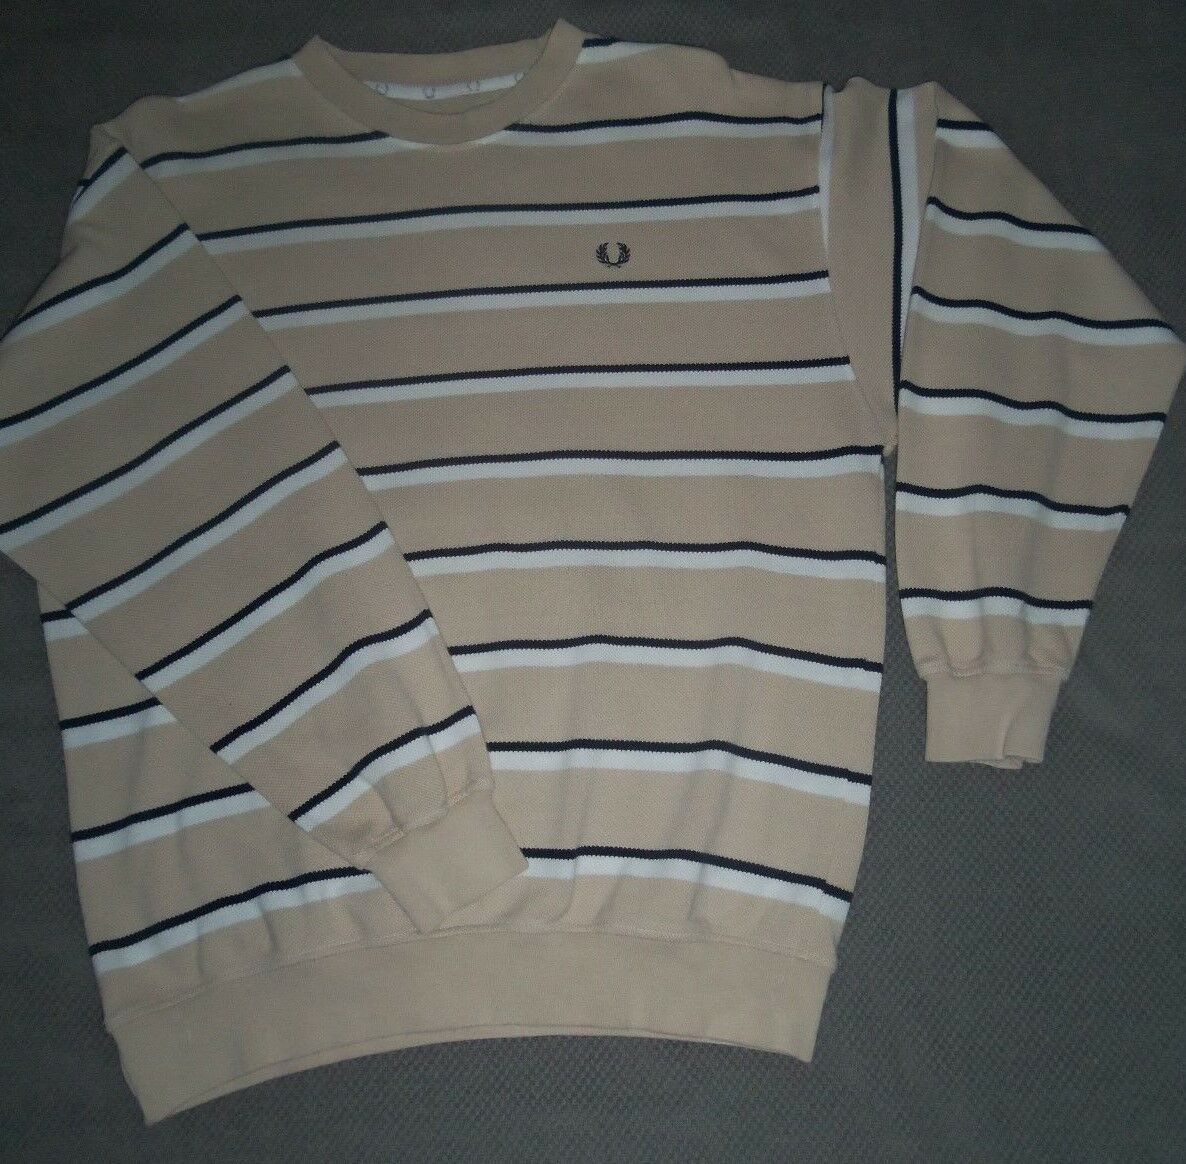 Fred Perry Long Sleeve Jumper Medium - 100% cotton